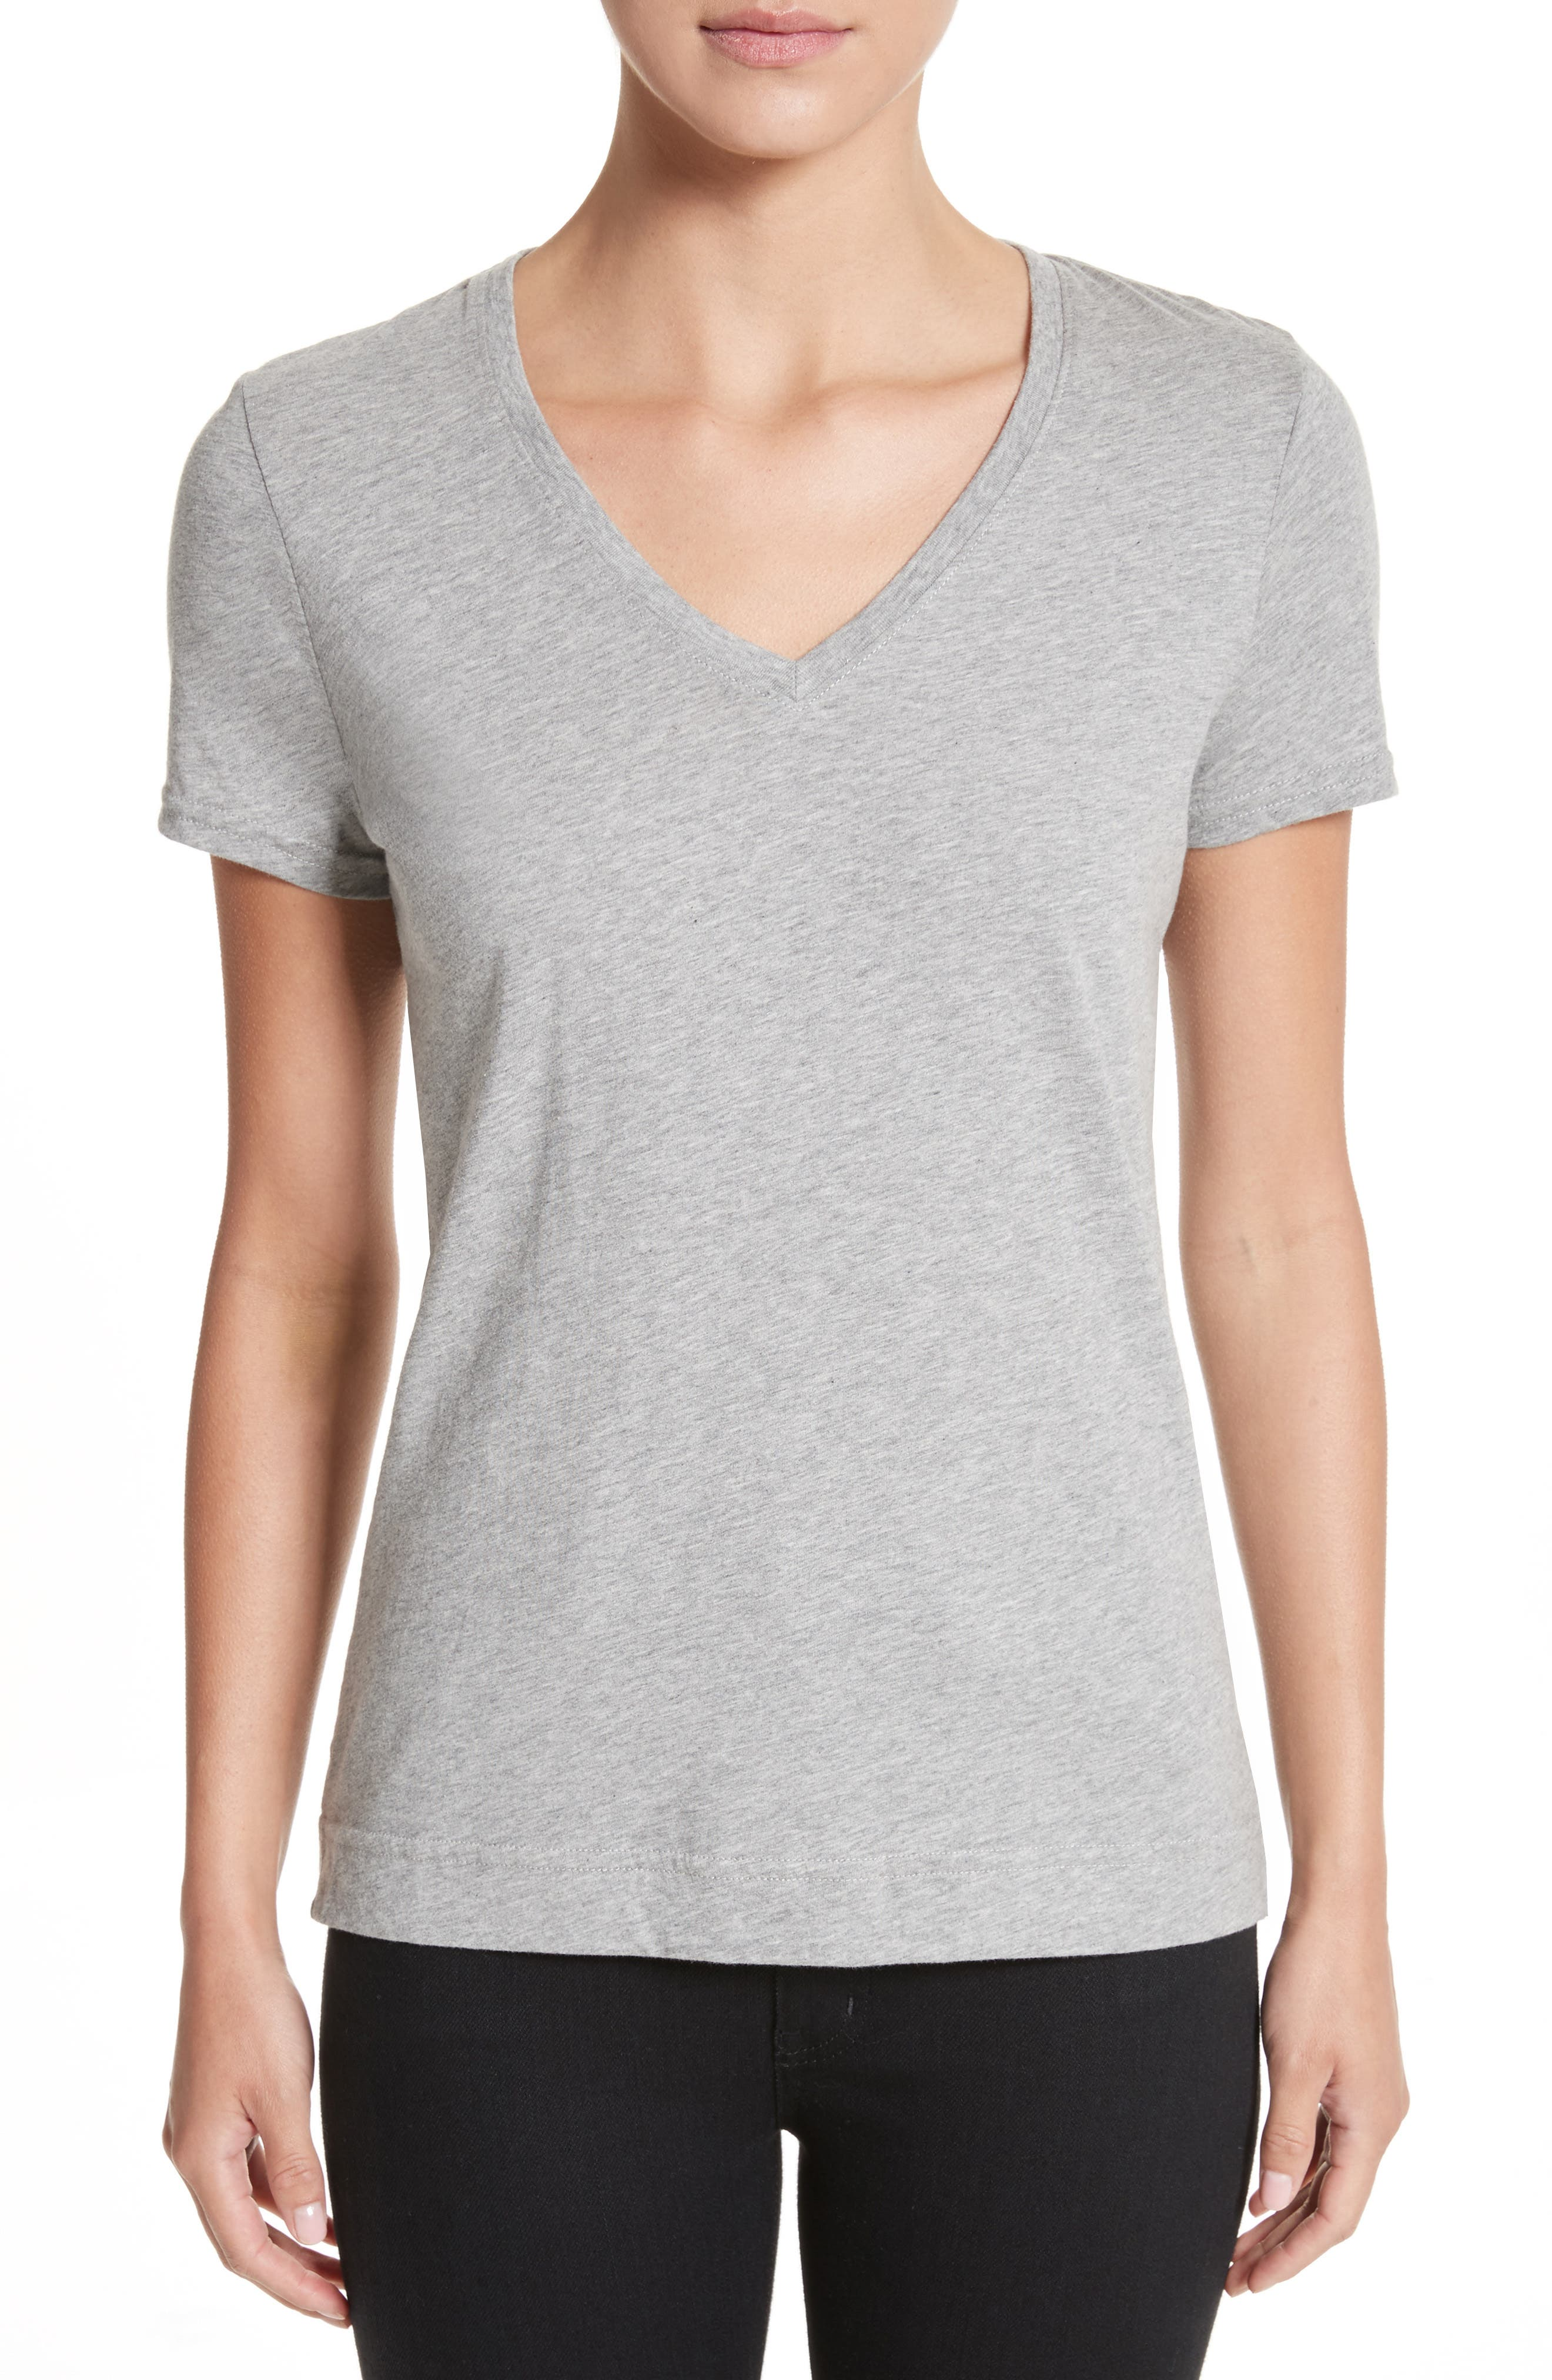 Adam lippes pima cotton short sleeve v neck t shirt grey for Adam lippes t shirt